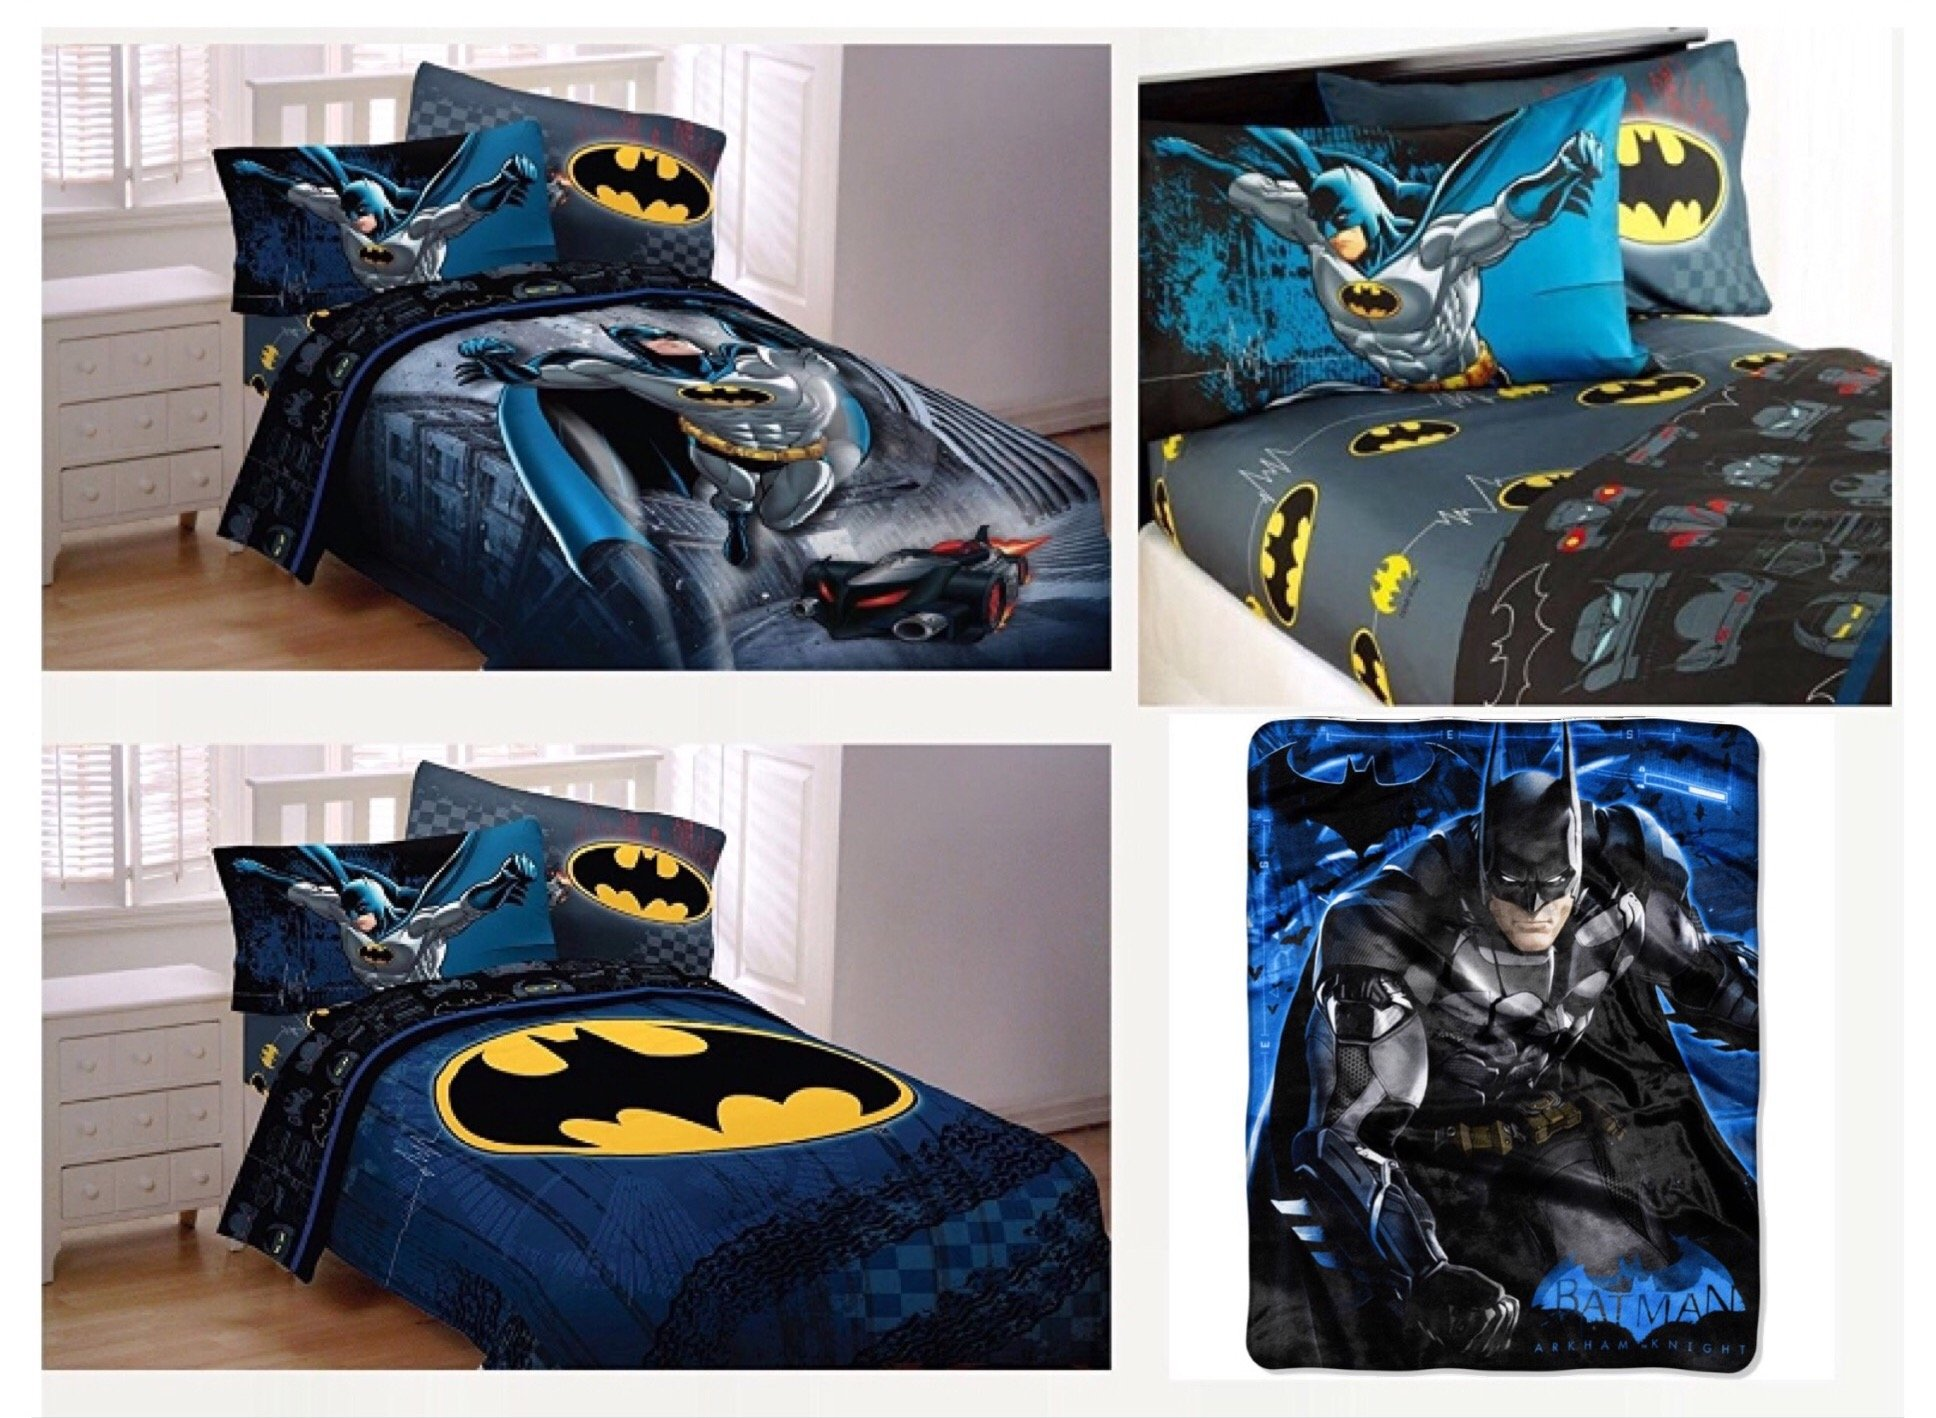 DC Comics Batman Kids Full Guardian Speed Bedding Set - Reversible Comforter, Sheet Set with Two Reversible Pillowcases and Ultra Soft Throw Blanket